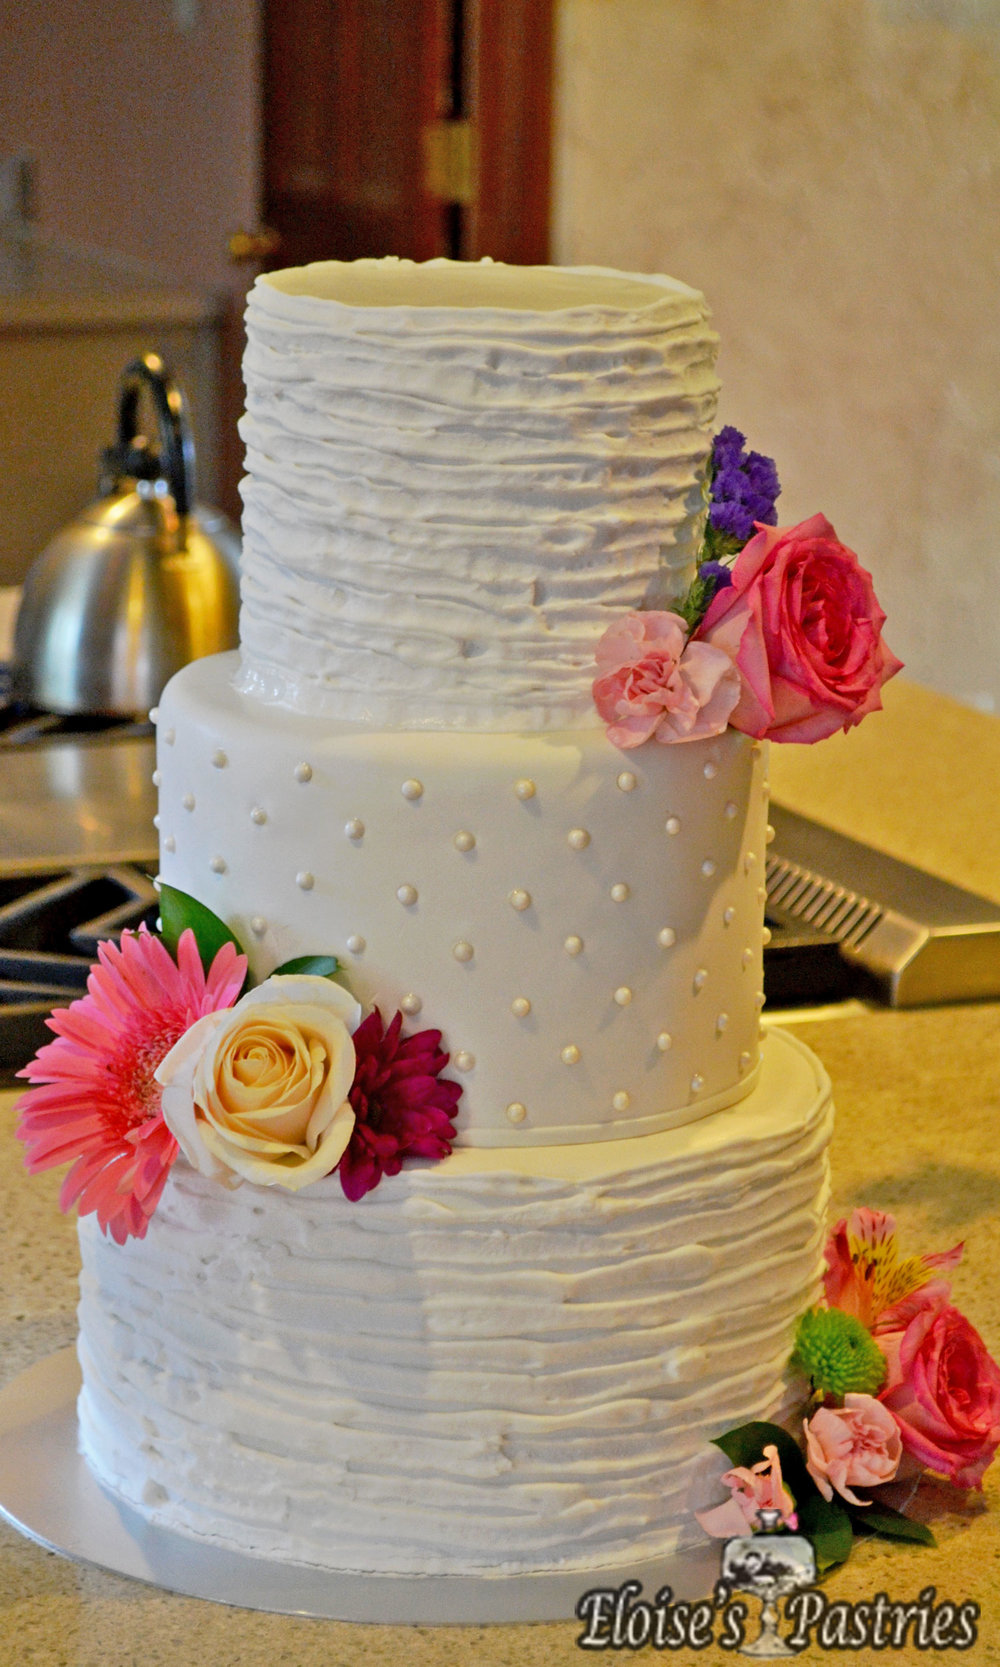 Simple Ruffle and Textured Wedding Cake